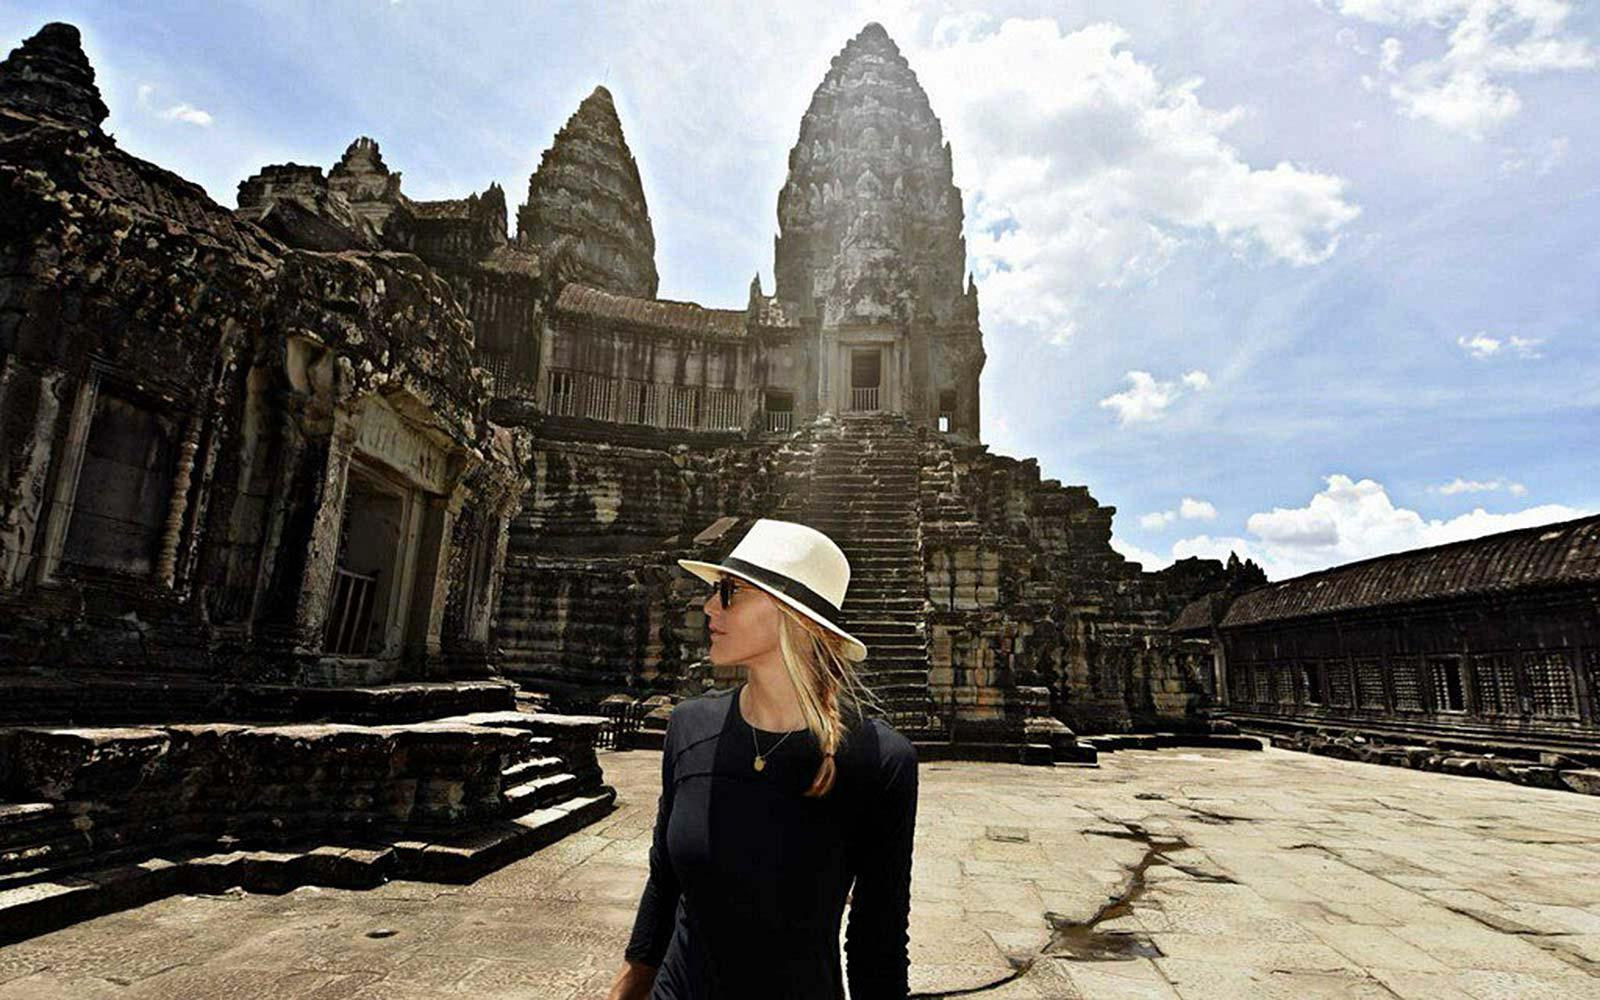 27-year-old becomes first woman to visit every country in the world